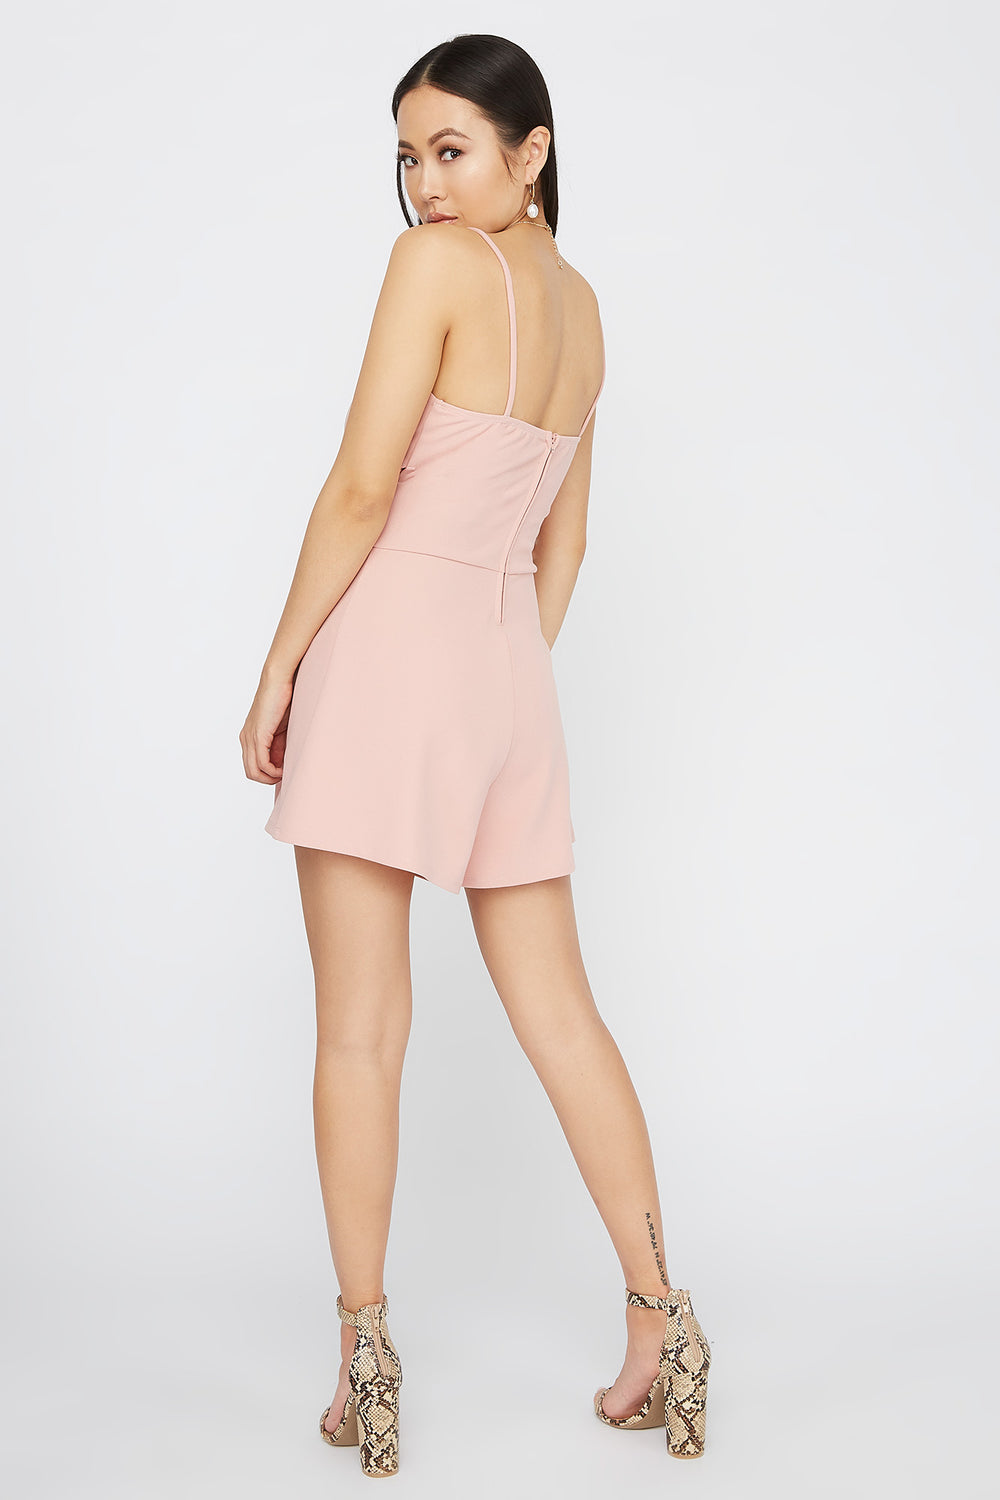 V-Neck Crossover Cut Out Romper Dusty Rose